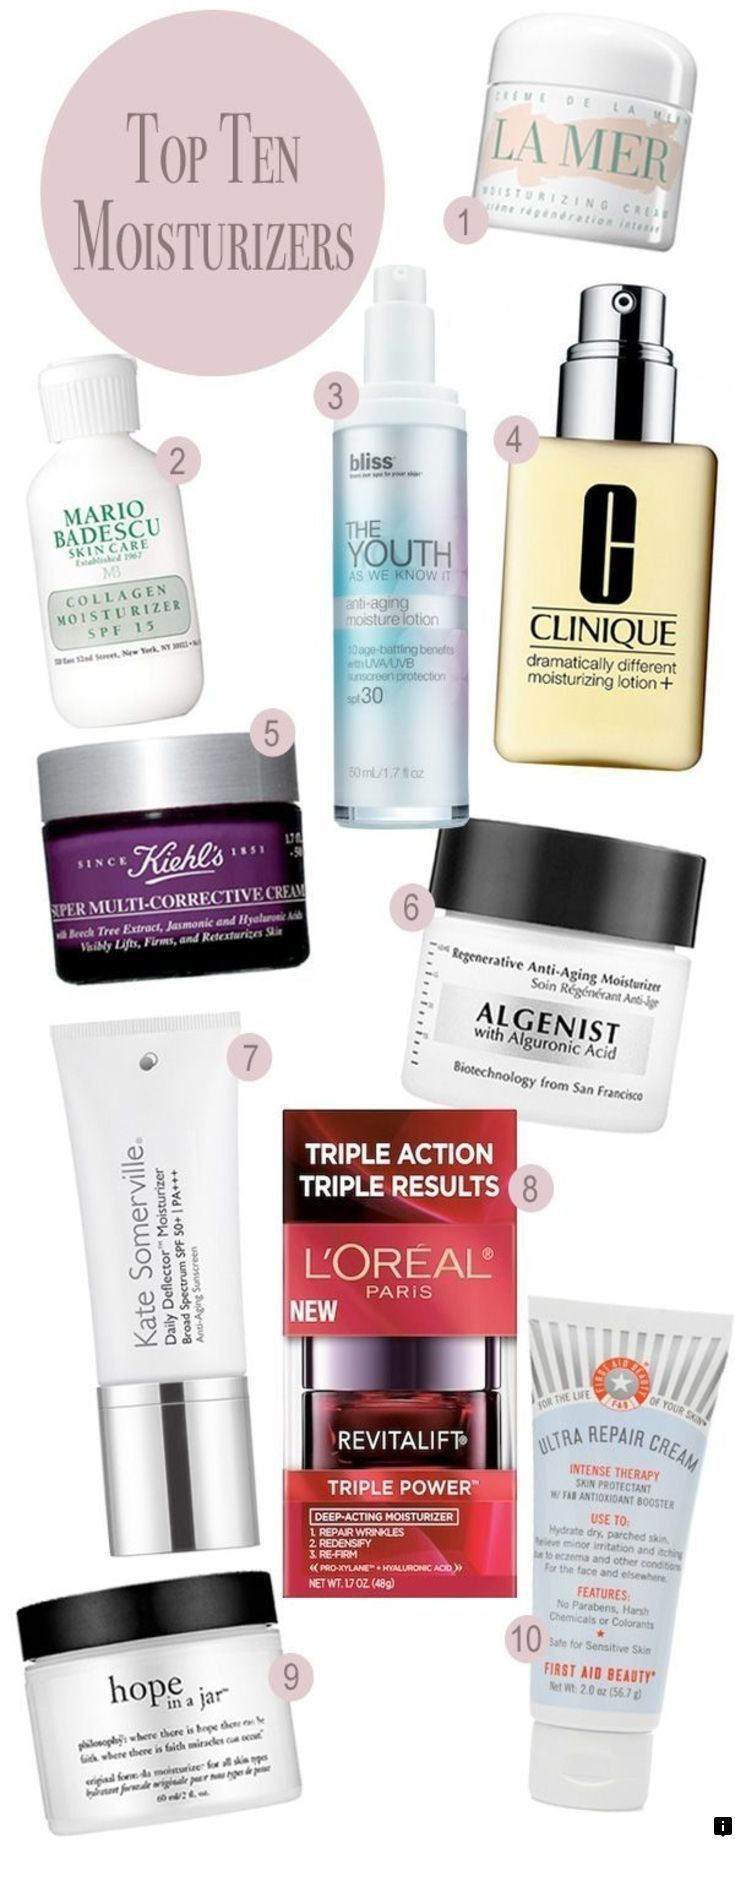 Read More About Men S Skin Care Check The Webpage For More Information The Web Presence Is Worth Chec Top 10 Moisturizers Makeup Skin Care Skin Makeup